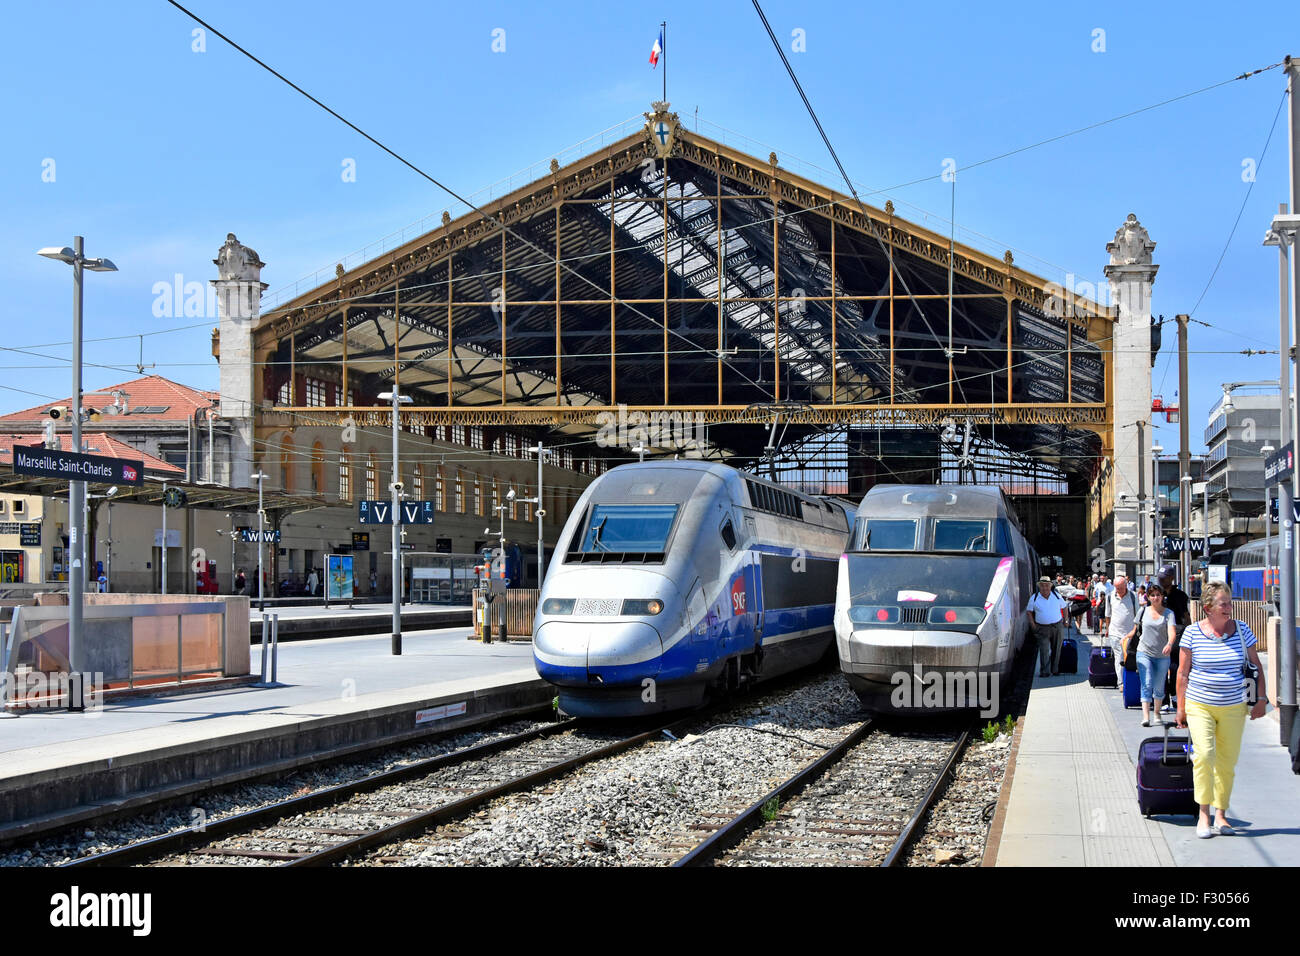 france sncf tgv high speed trains at marseille saint